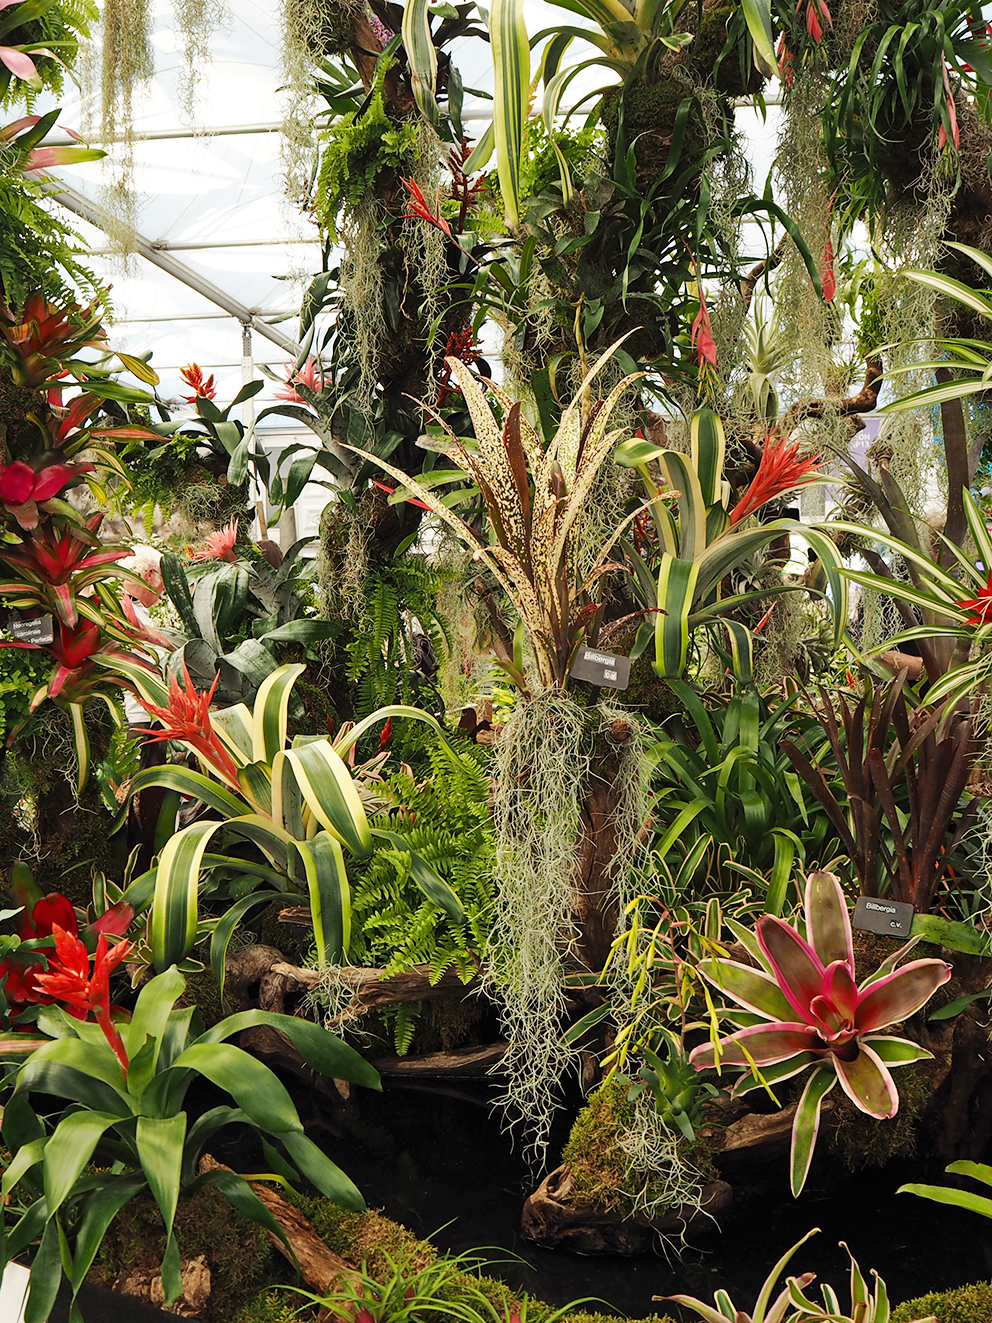 French For Pineapple Blog - RHS Chelsea Flower Show 2017 - Bromeliad Garden